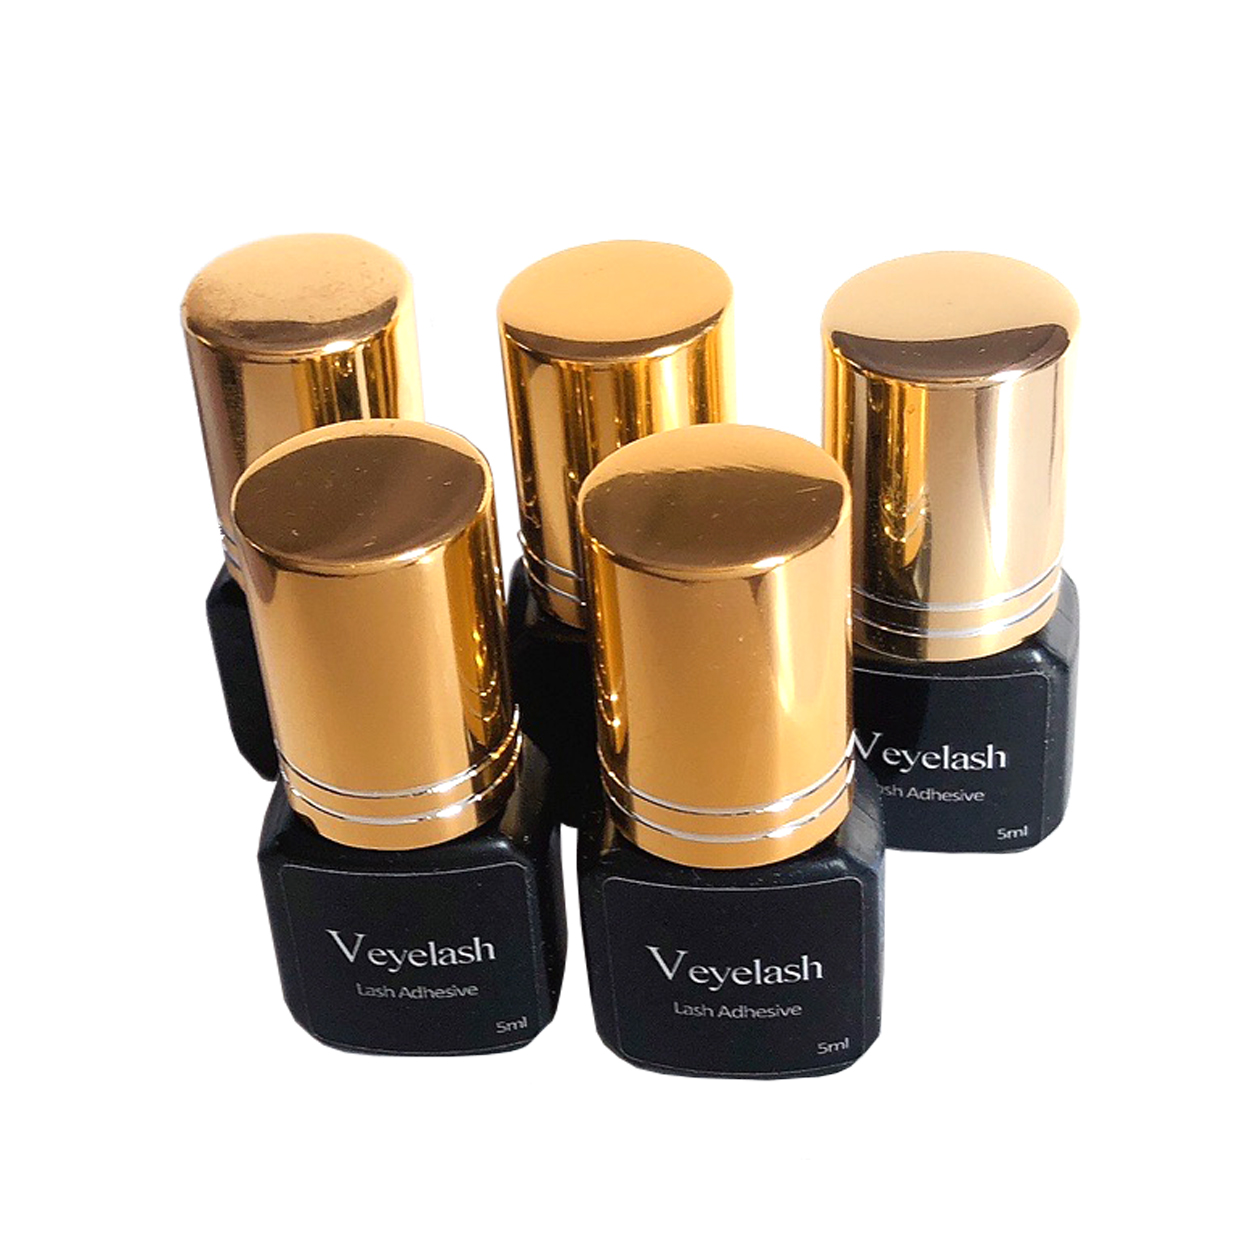 Veyelash Eyelashes Makeup 3 Different Glue For Lashes Eyelash Glue Low Smell Non Odorless Fast Dry Sticker Connecting Fans